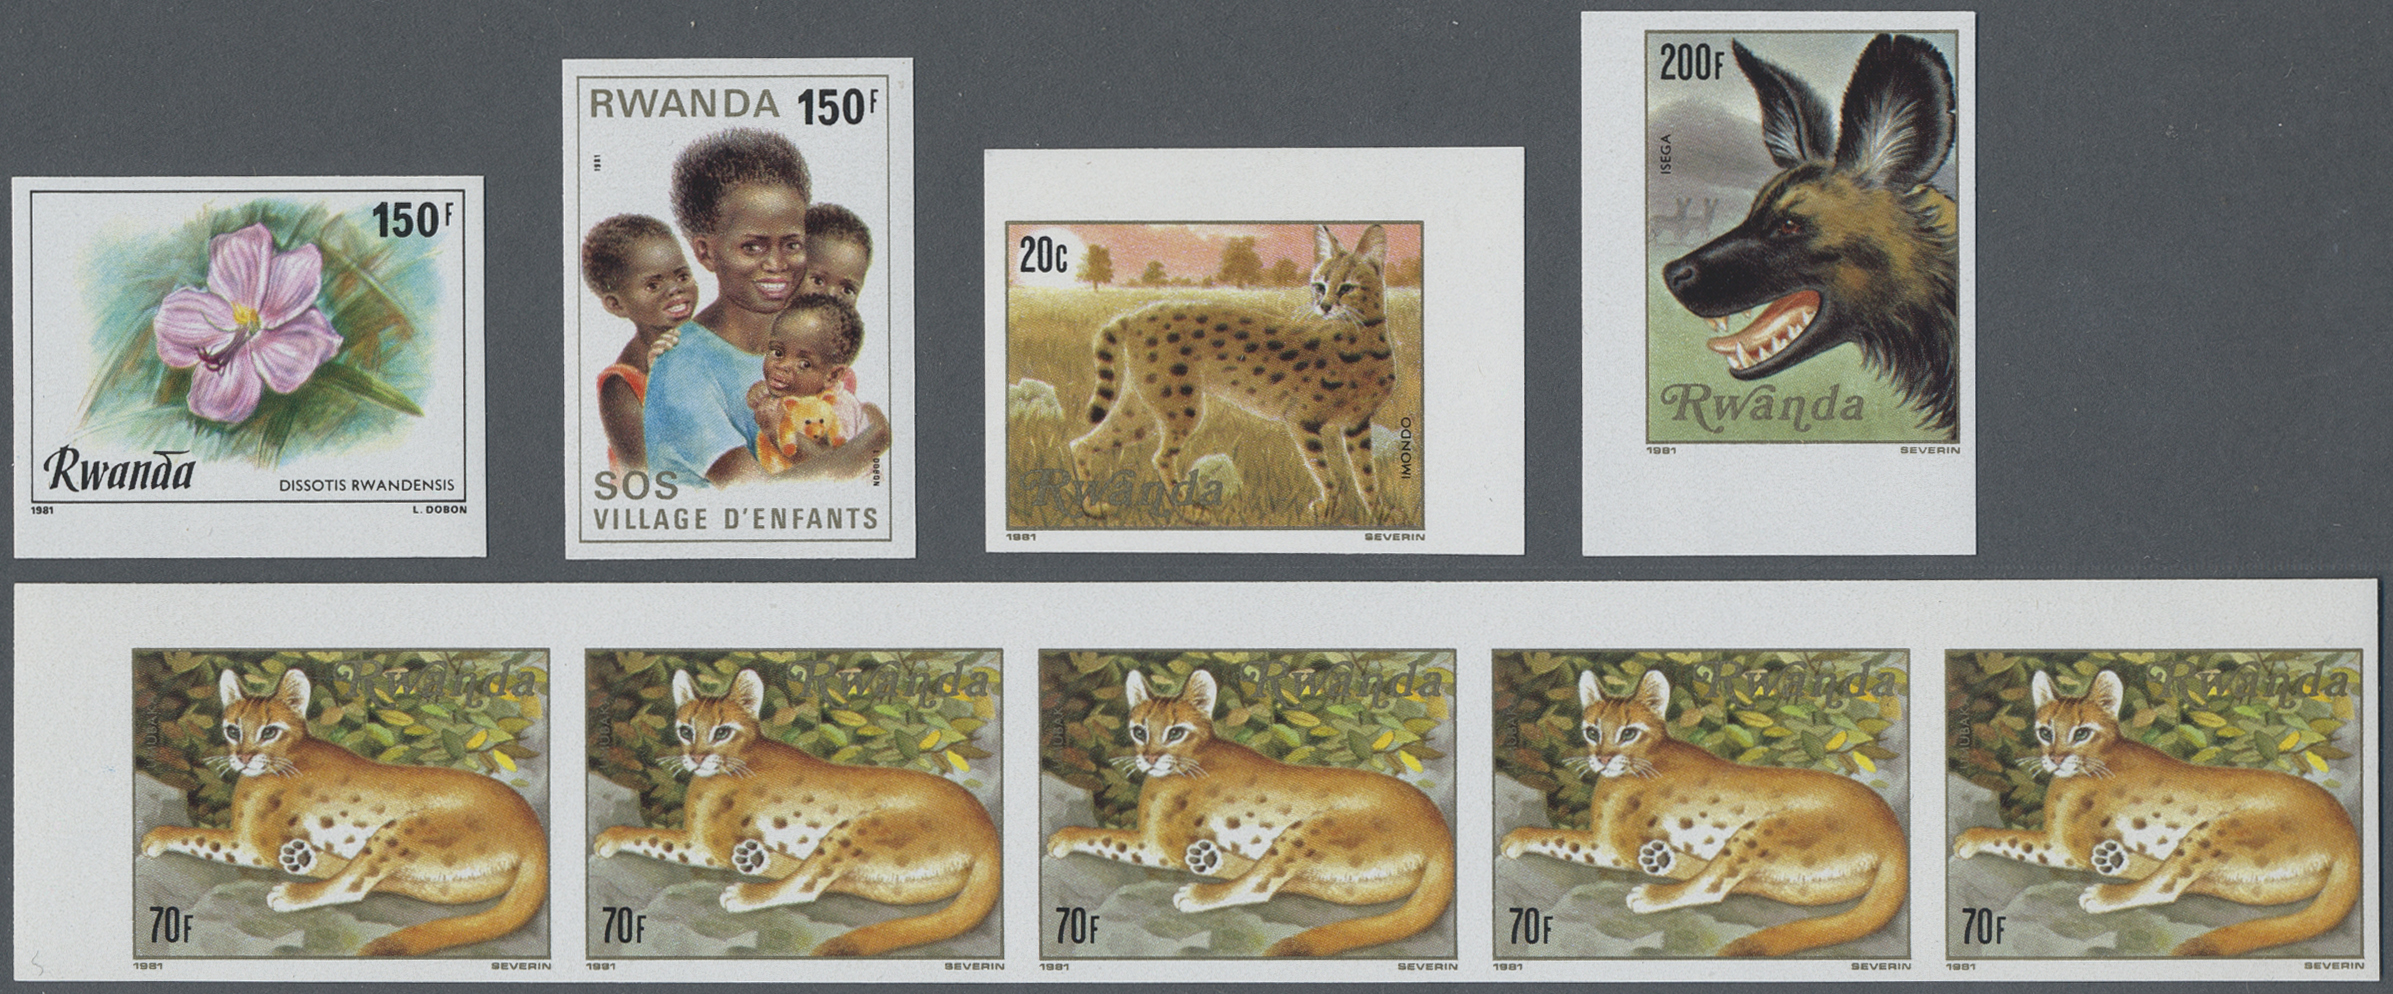 Lot 29666 - ruanda  -  Auktionshaus Christoph Gärtner GmbH & Co. KG Sale #44 Collections Overseas, Europe